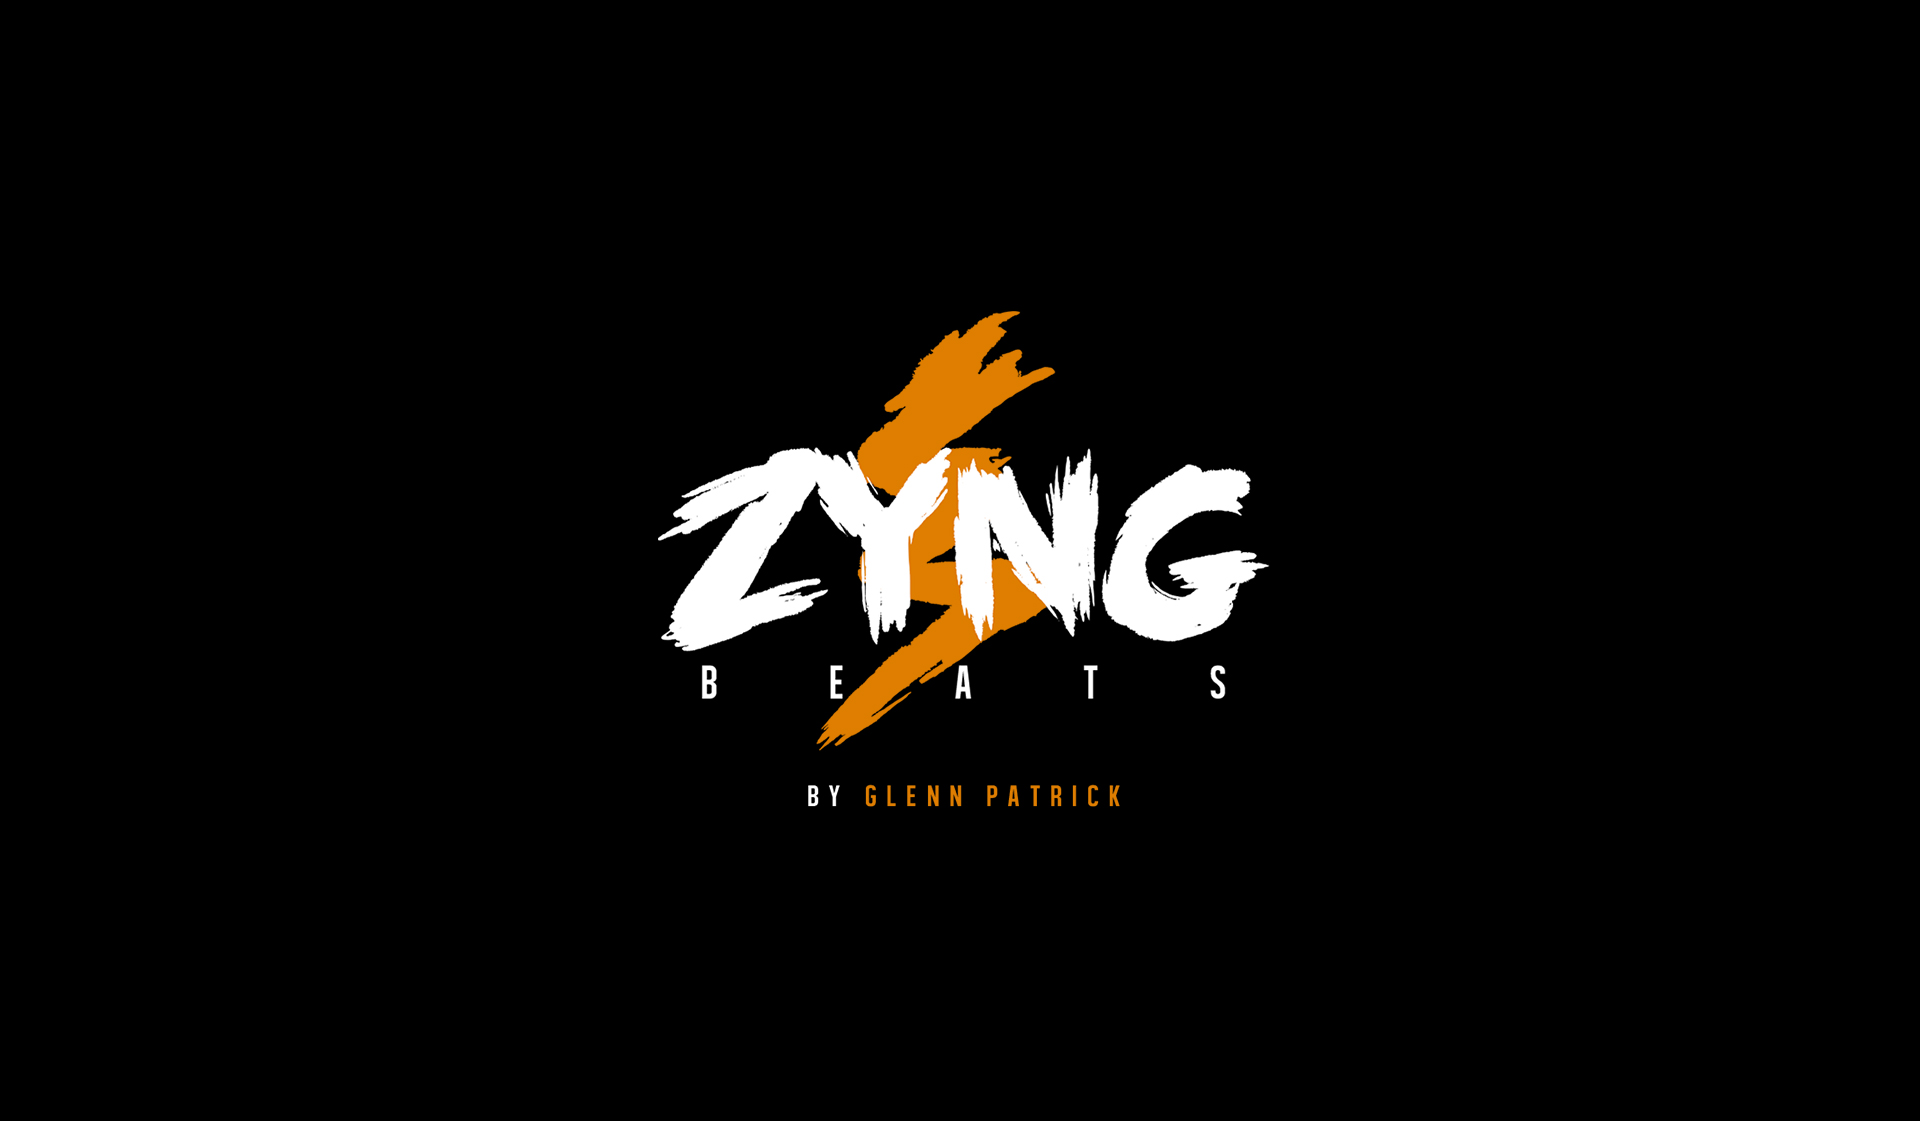 Zyng Beats by Glenn Patrick background